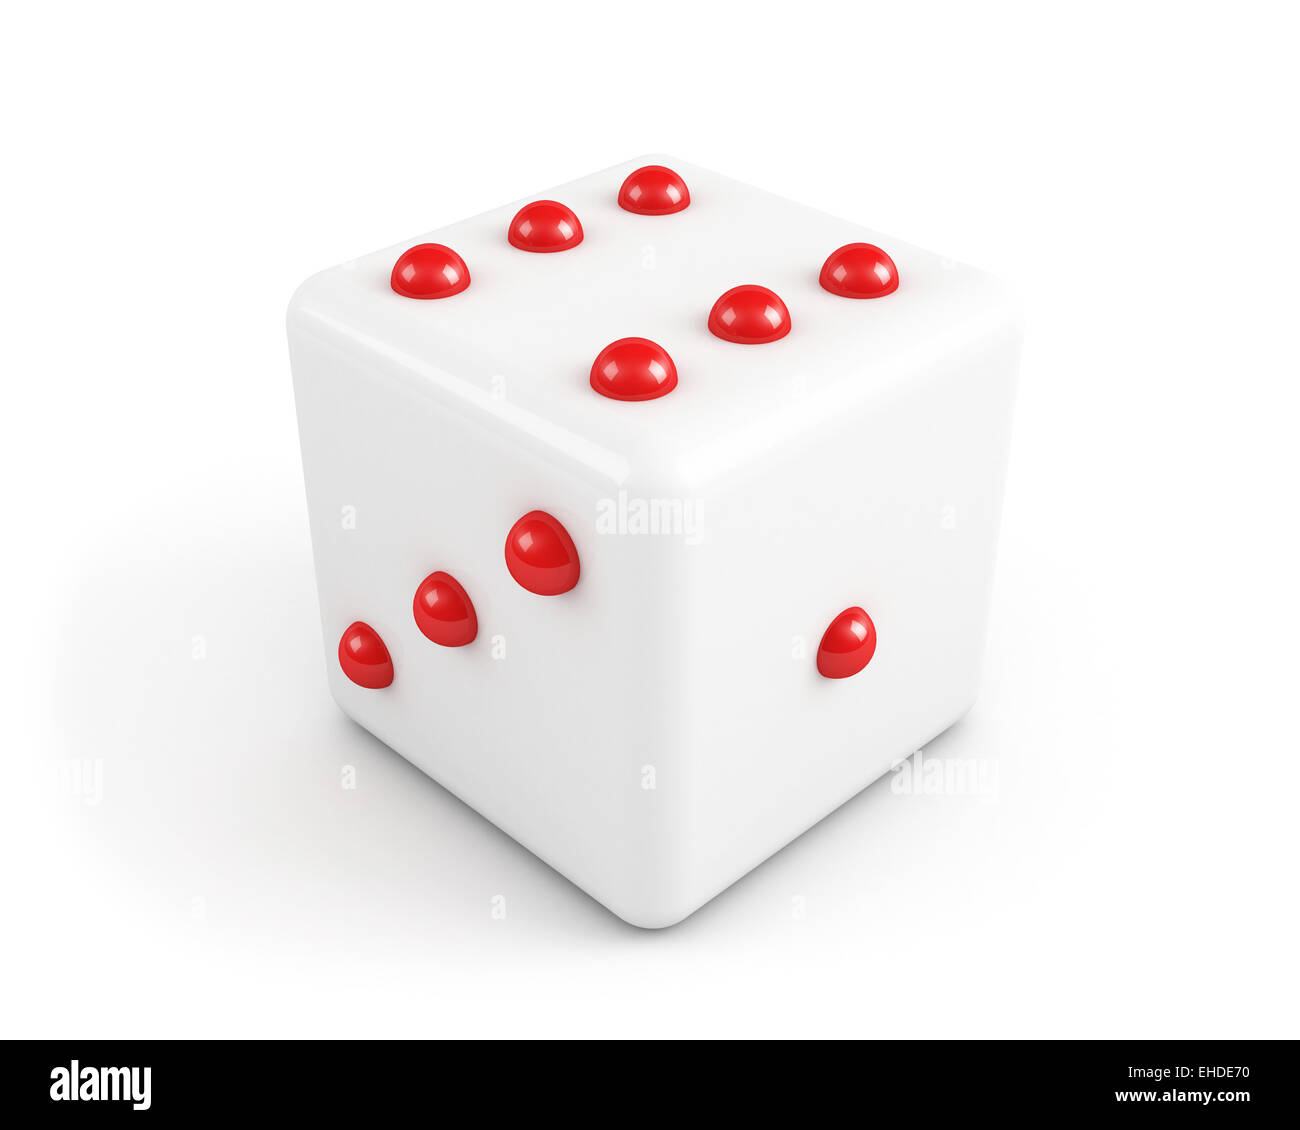 dice with red dots - Stock Image